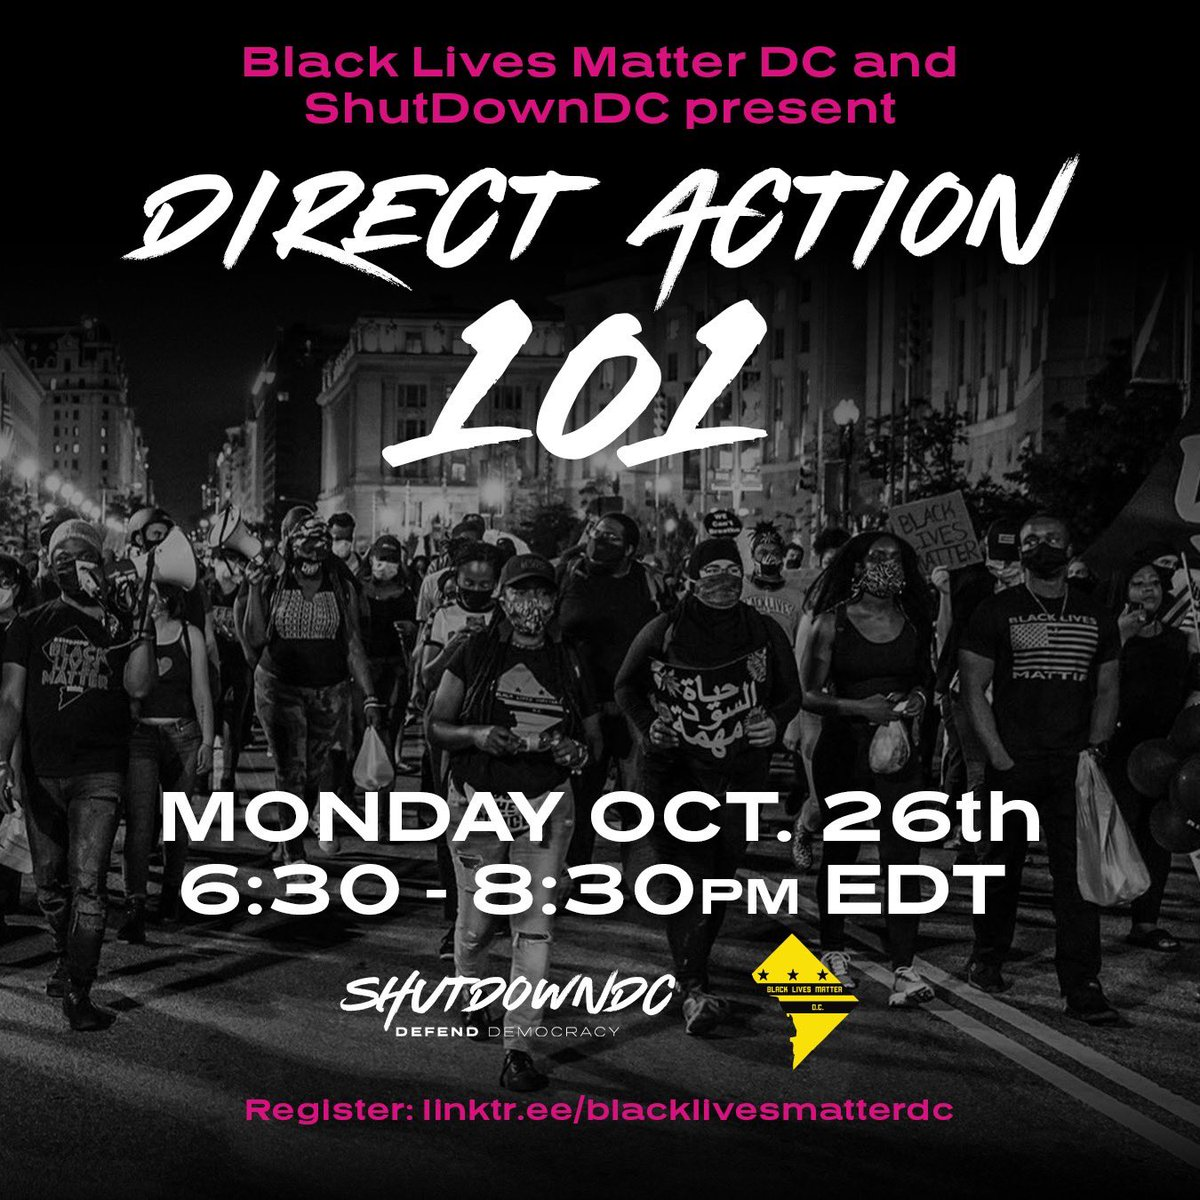 Sign up and get tips on Direct Action 101. Catch us in the streets during the Election time! We stay ready, so we don't have to get ready.! #WeKeepUsSafe #BlackLivesMatter #DefendBlackLives  @shutdowndc_